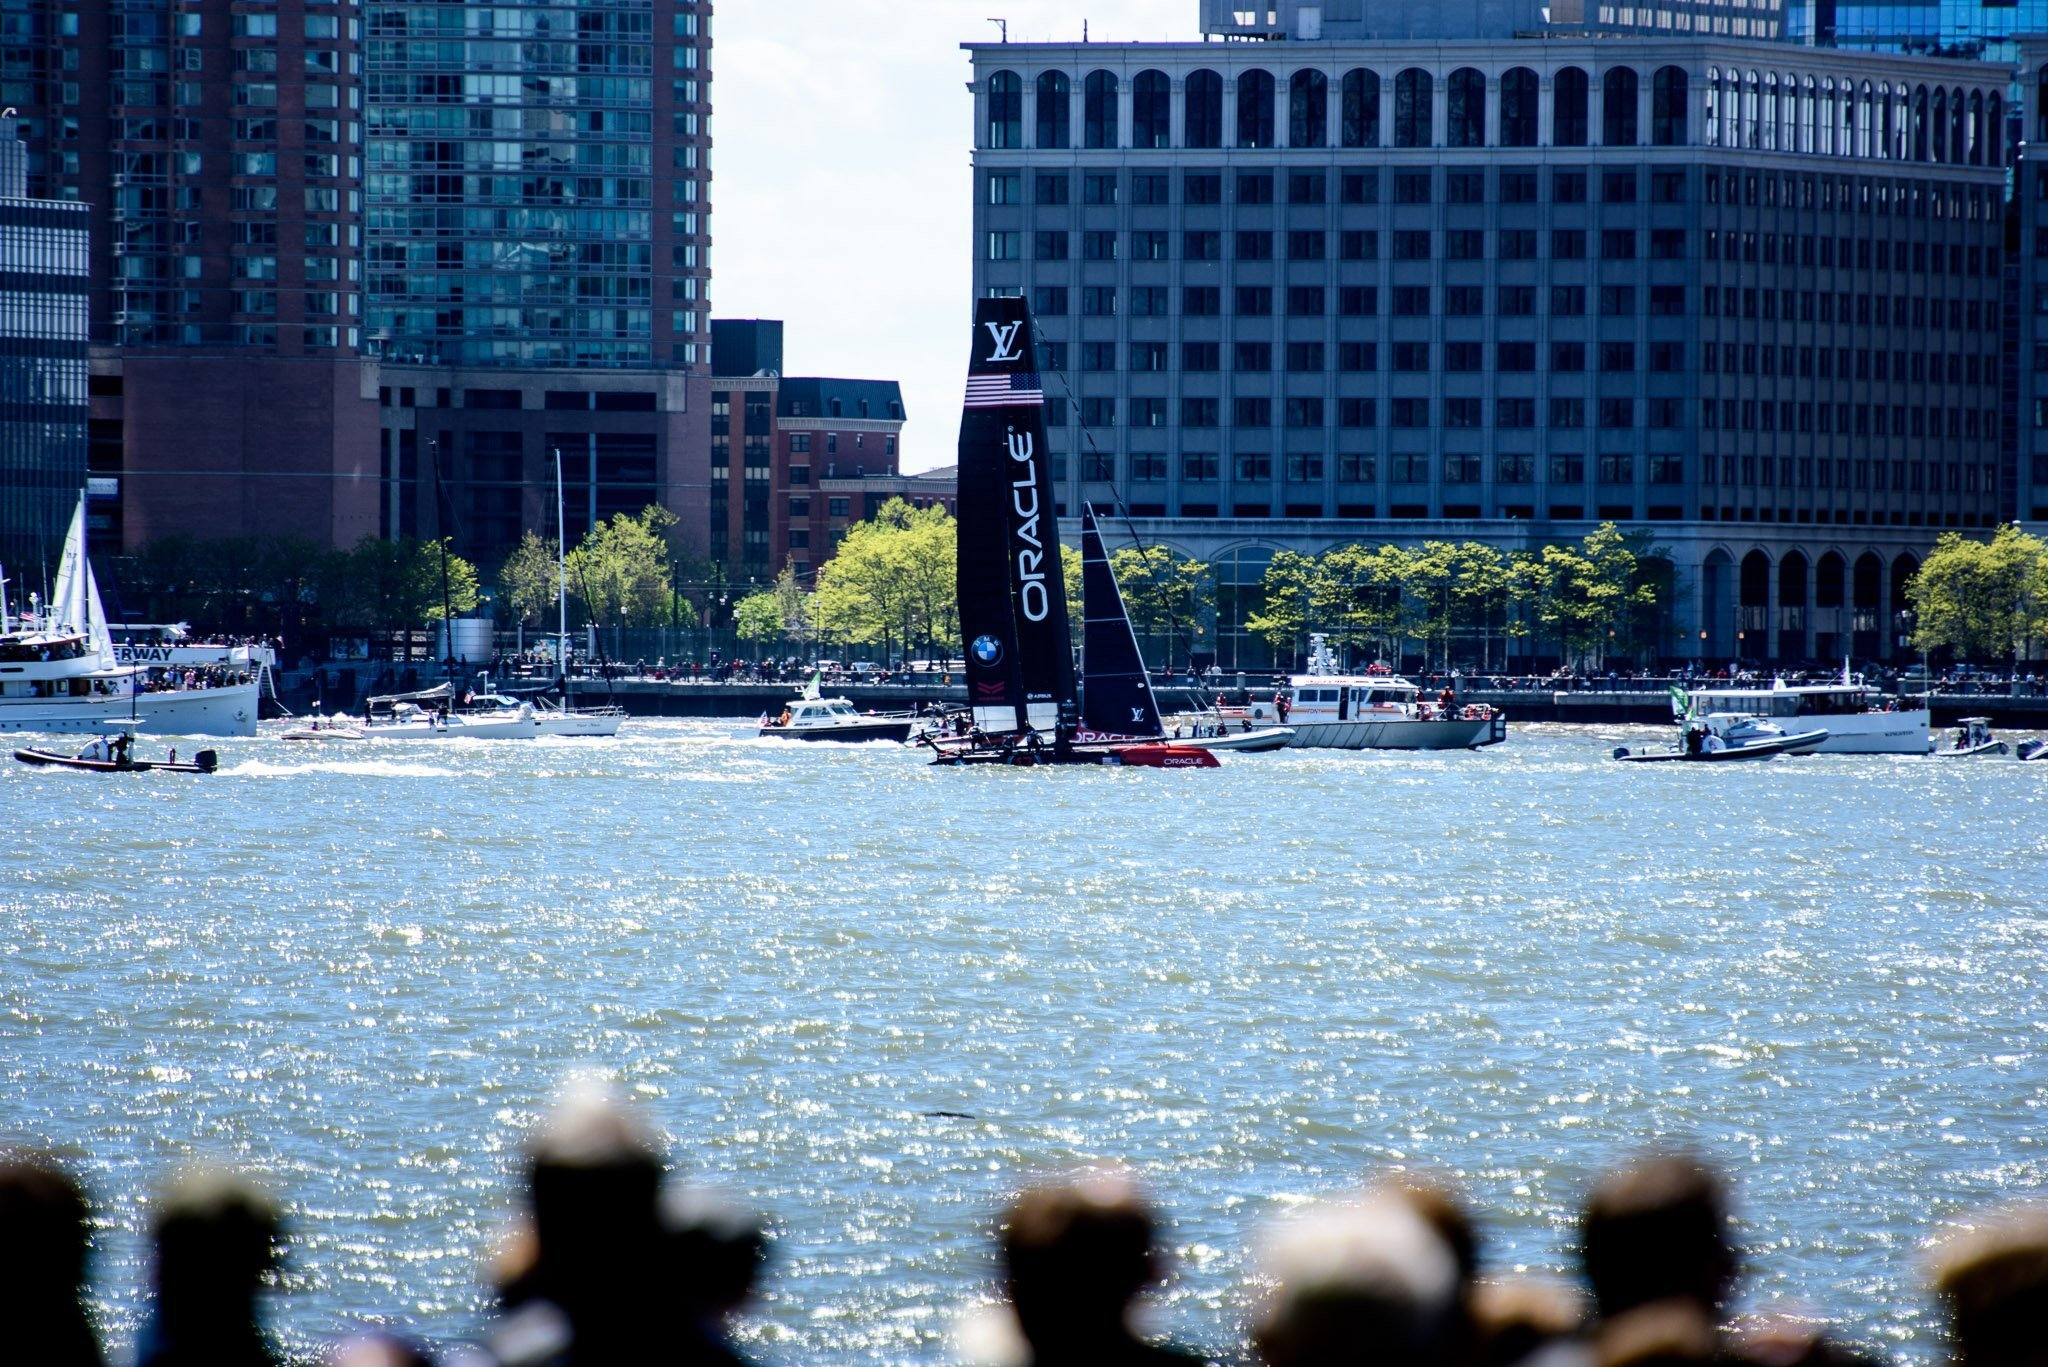 Land Rover America's Cup